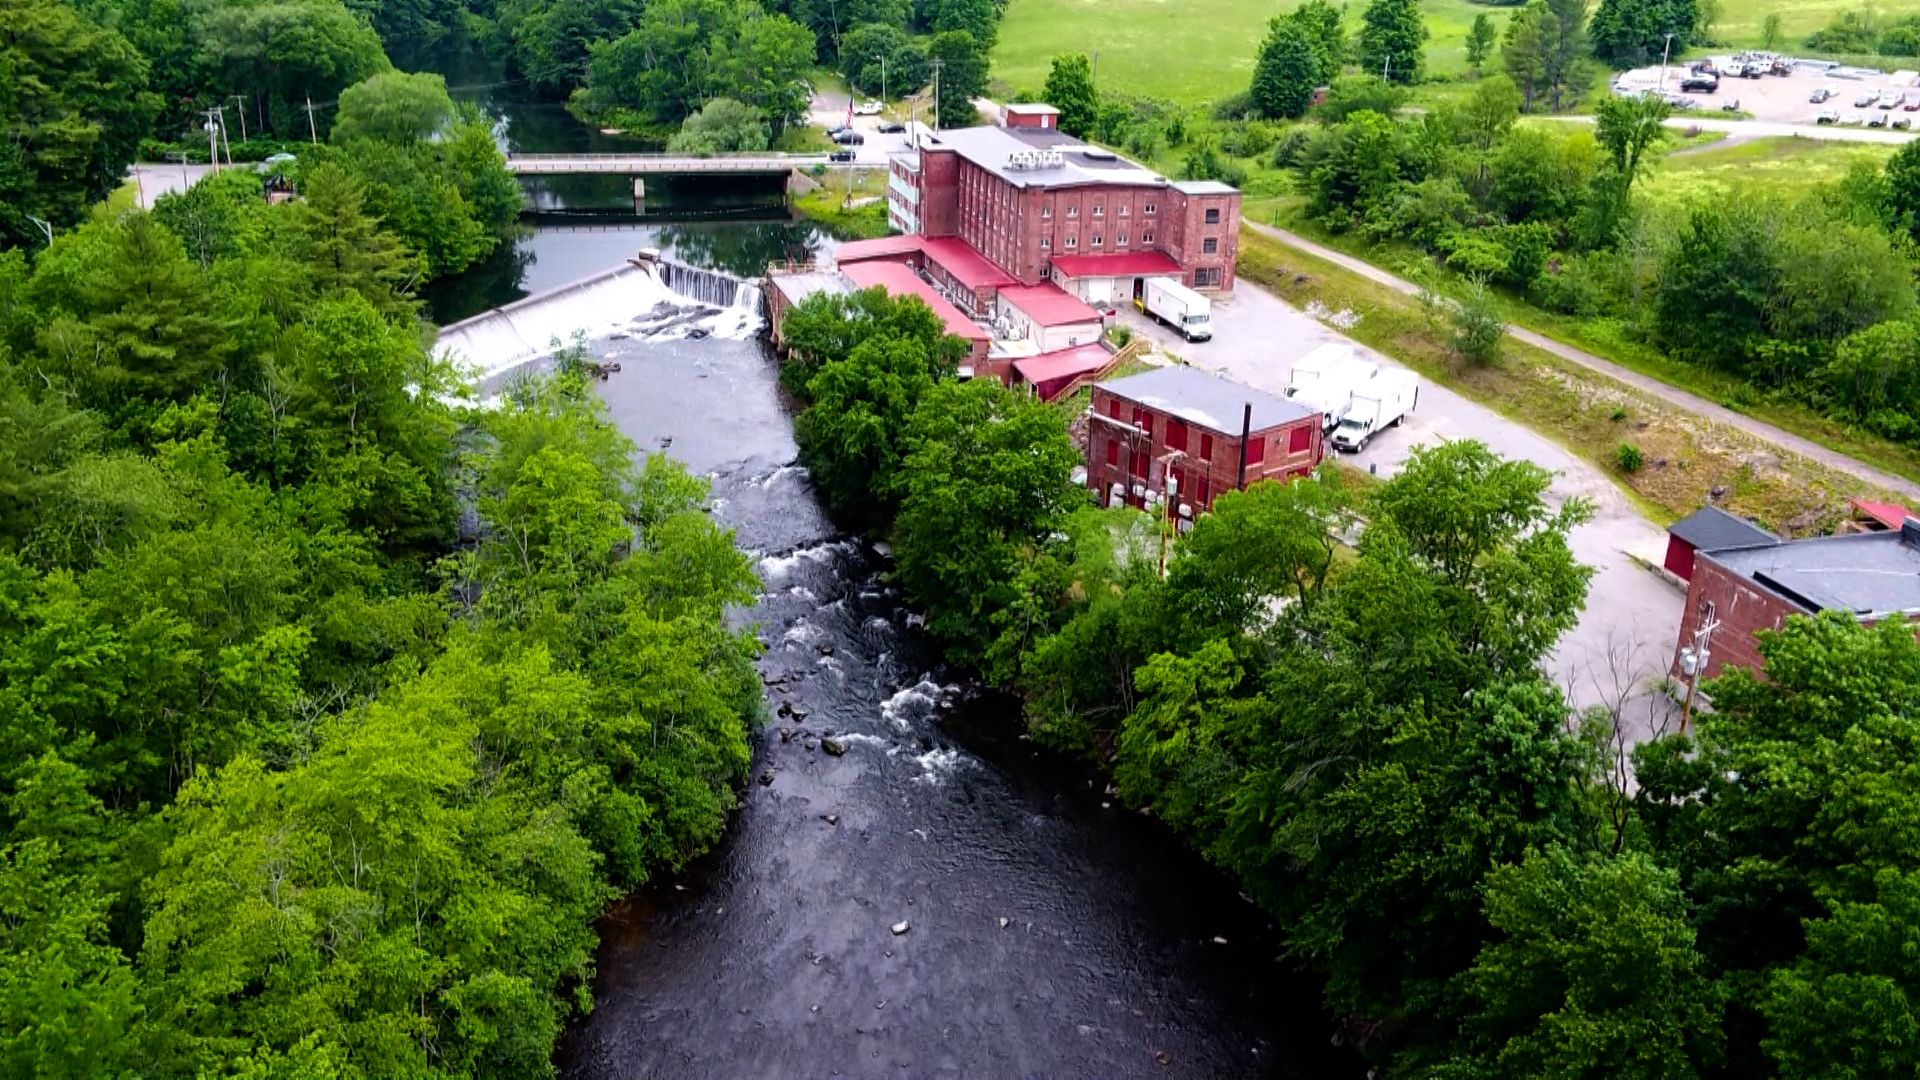 Alewives return to part of Maine river for first time in nearly 300 years